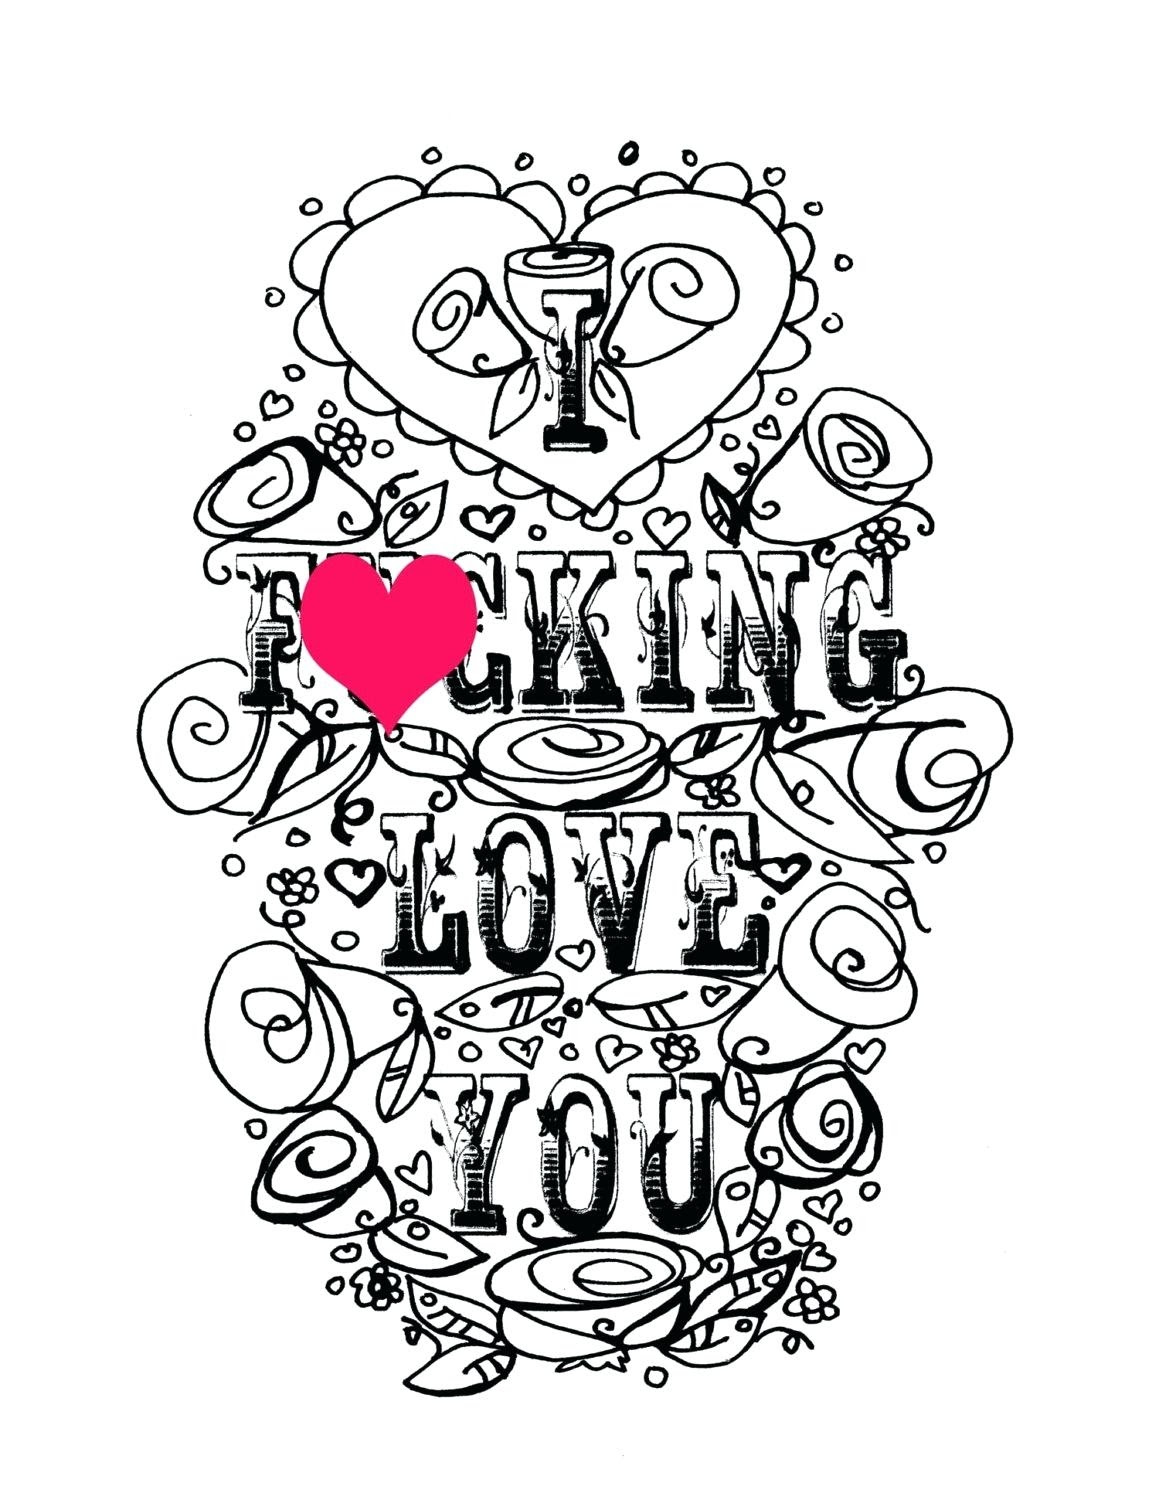 We Love You Coloring Pages at GetColorings.com | Free ...